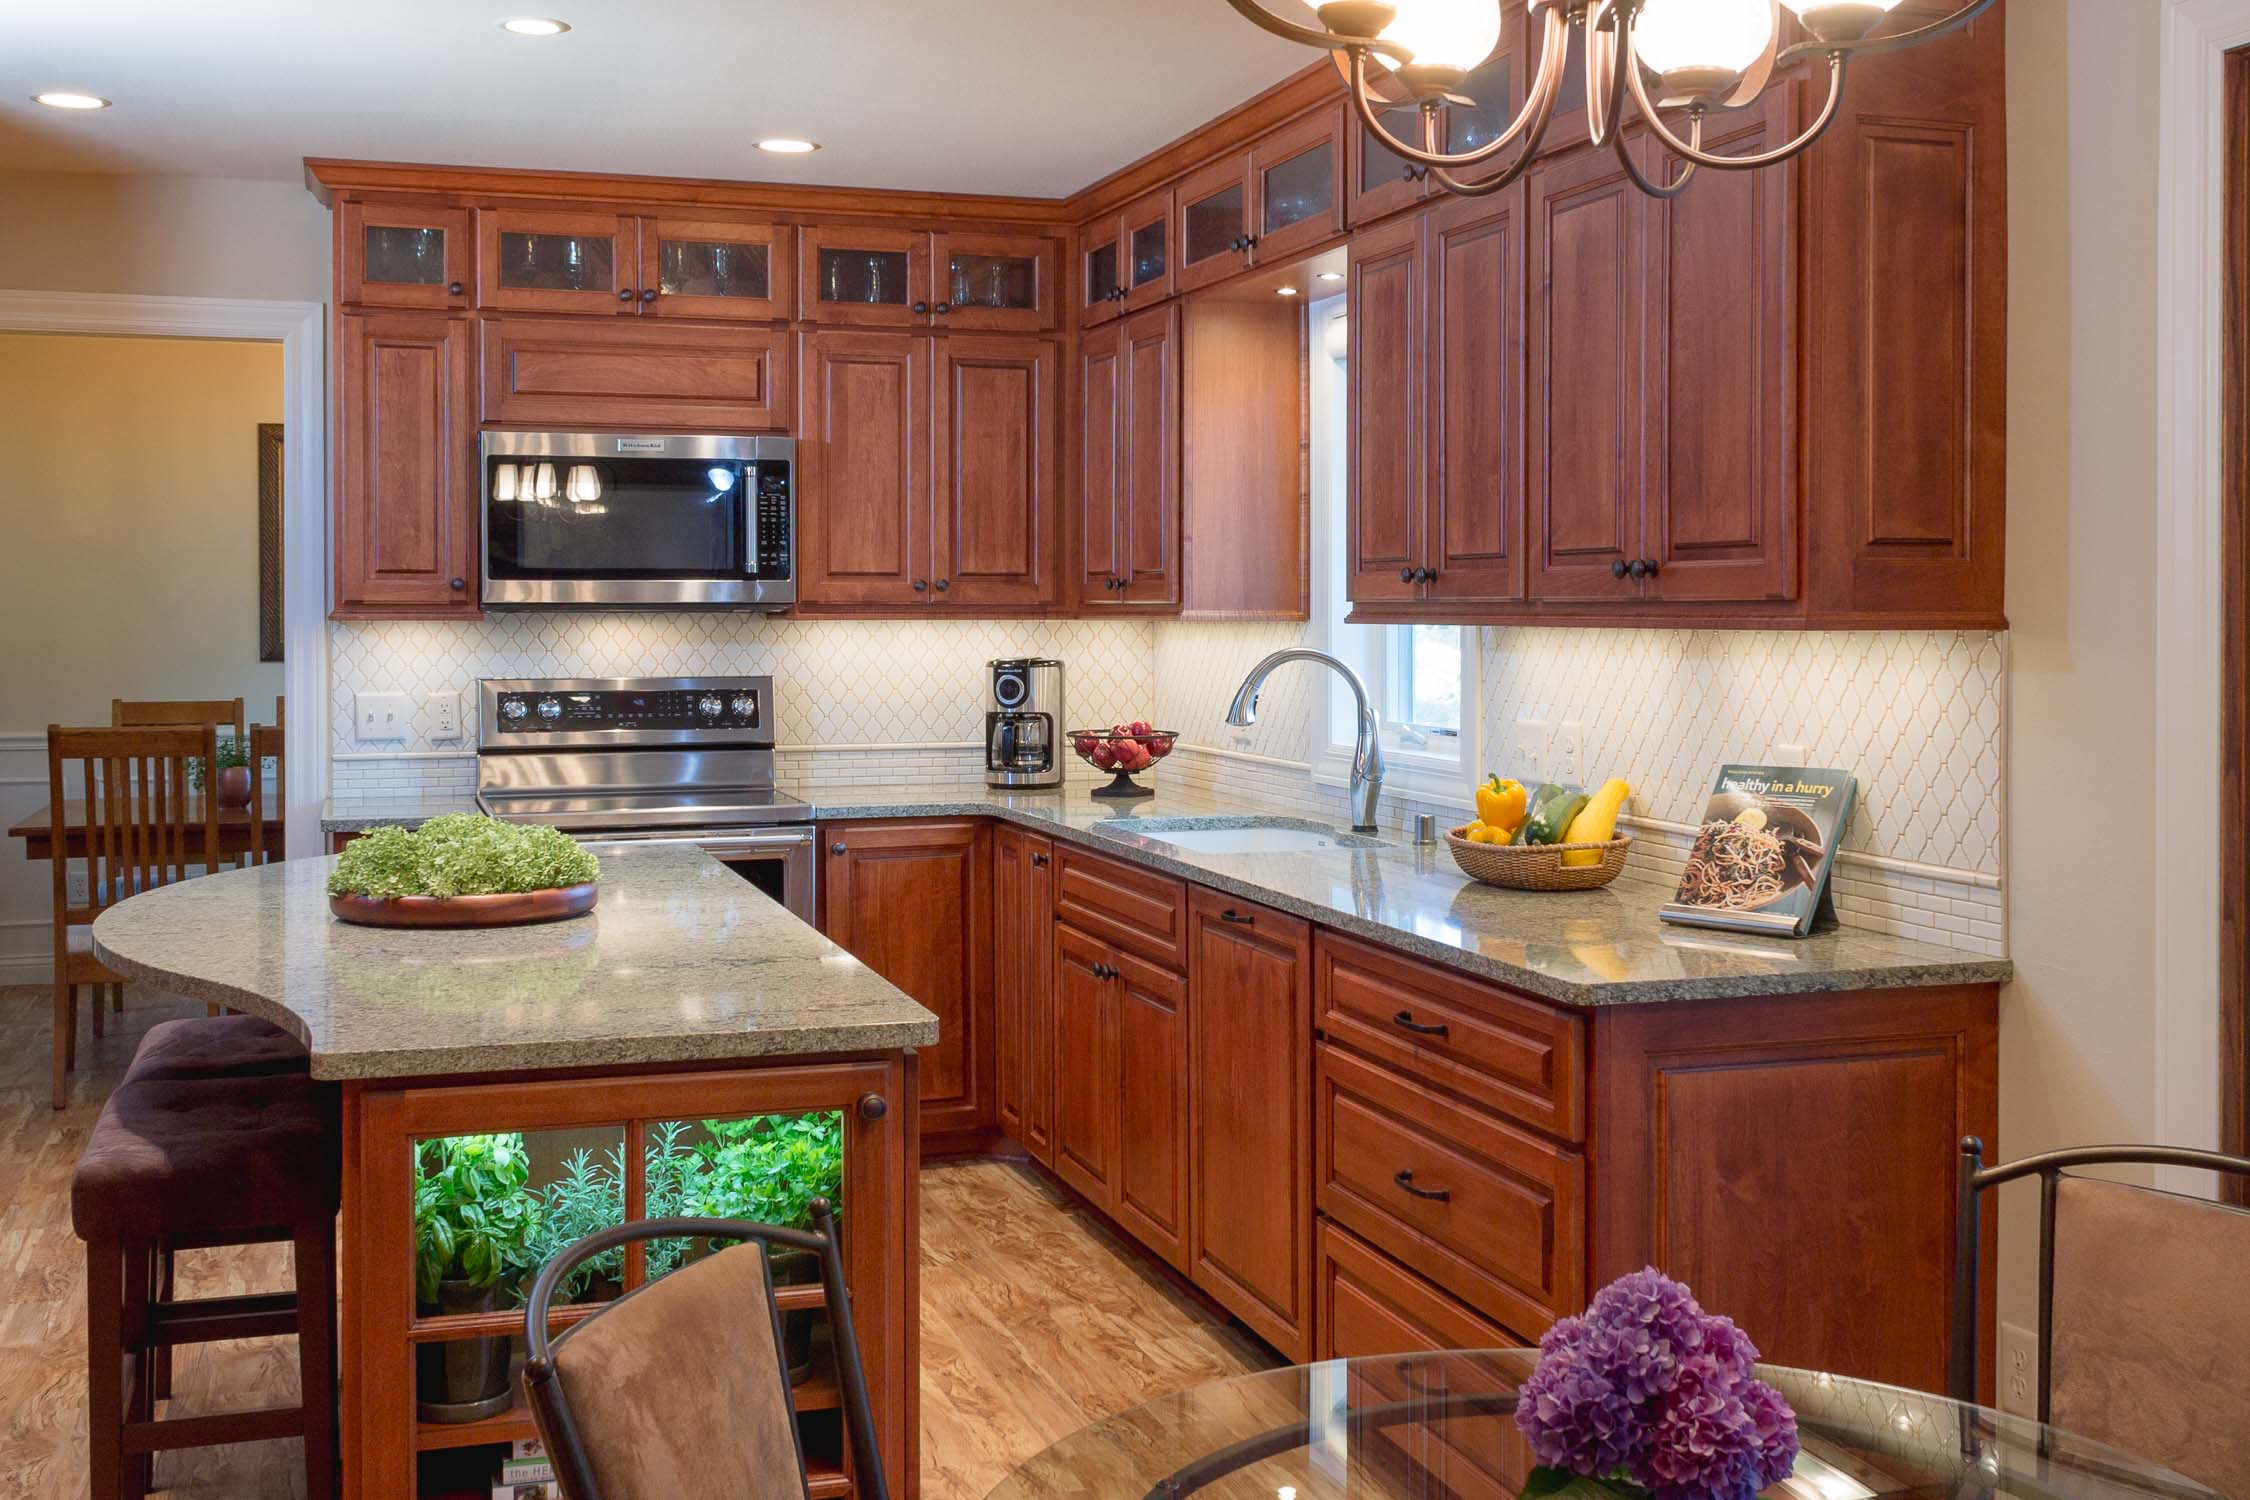 Remodeling? What To Know About Kitchen Cabinet Box Construction